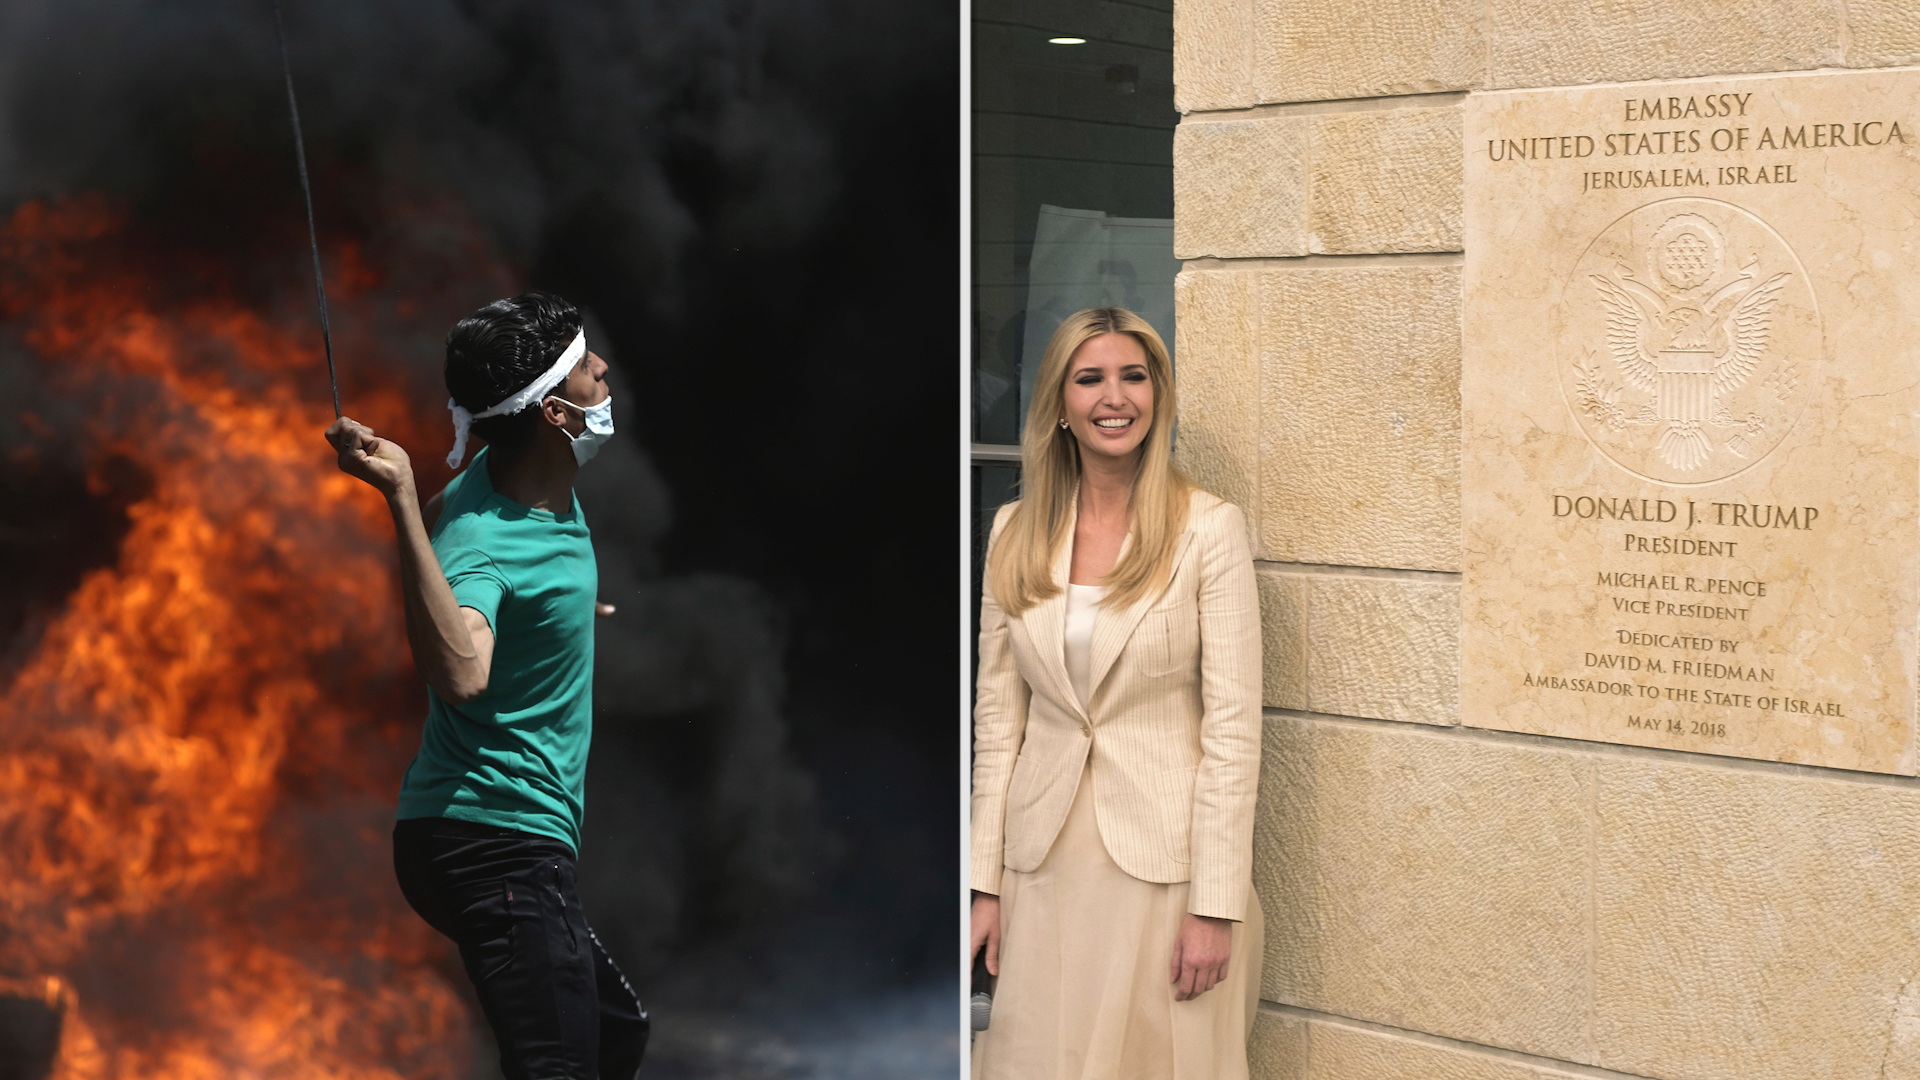 Under banner of peace, U.S. opens embassy in Jerusalem. Sixty miles away, dozens of Palestinians are killed.